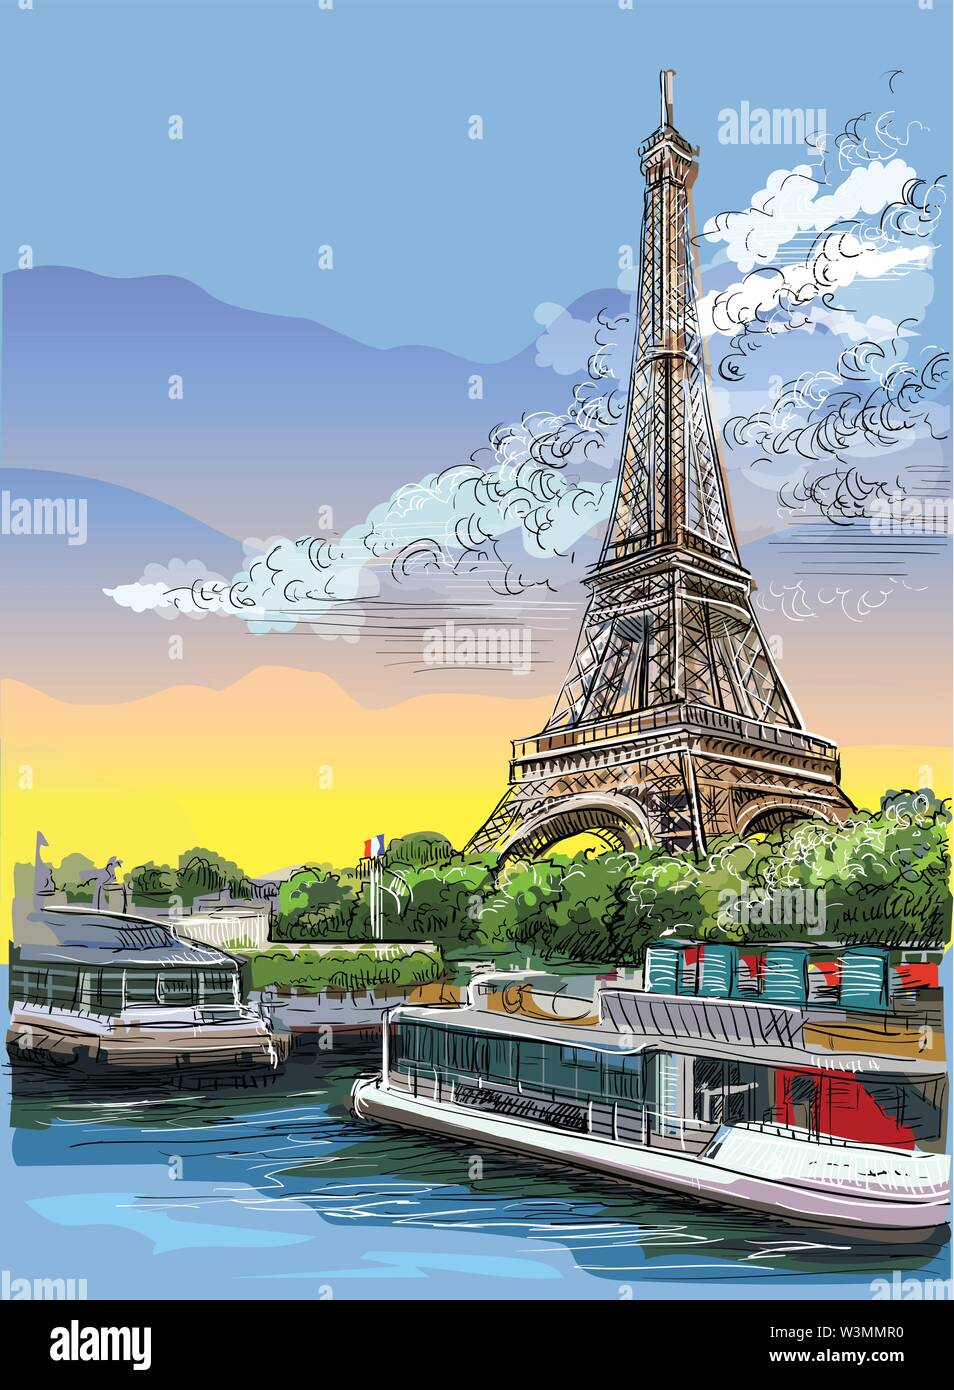 Colorful vector hand drawing Illustration of Eiffel Tower, landmark of Paris, France. Cityscape with Eiffel Tower, view on Seine river embankment. Col - Stock Image